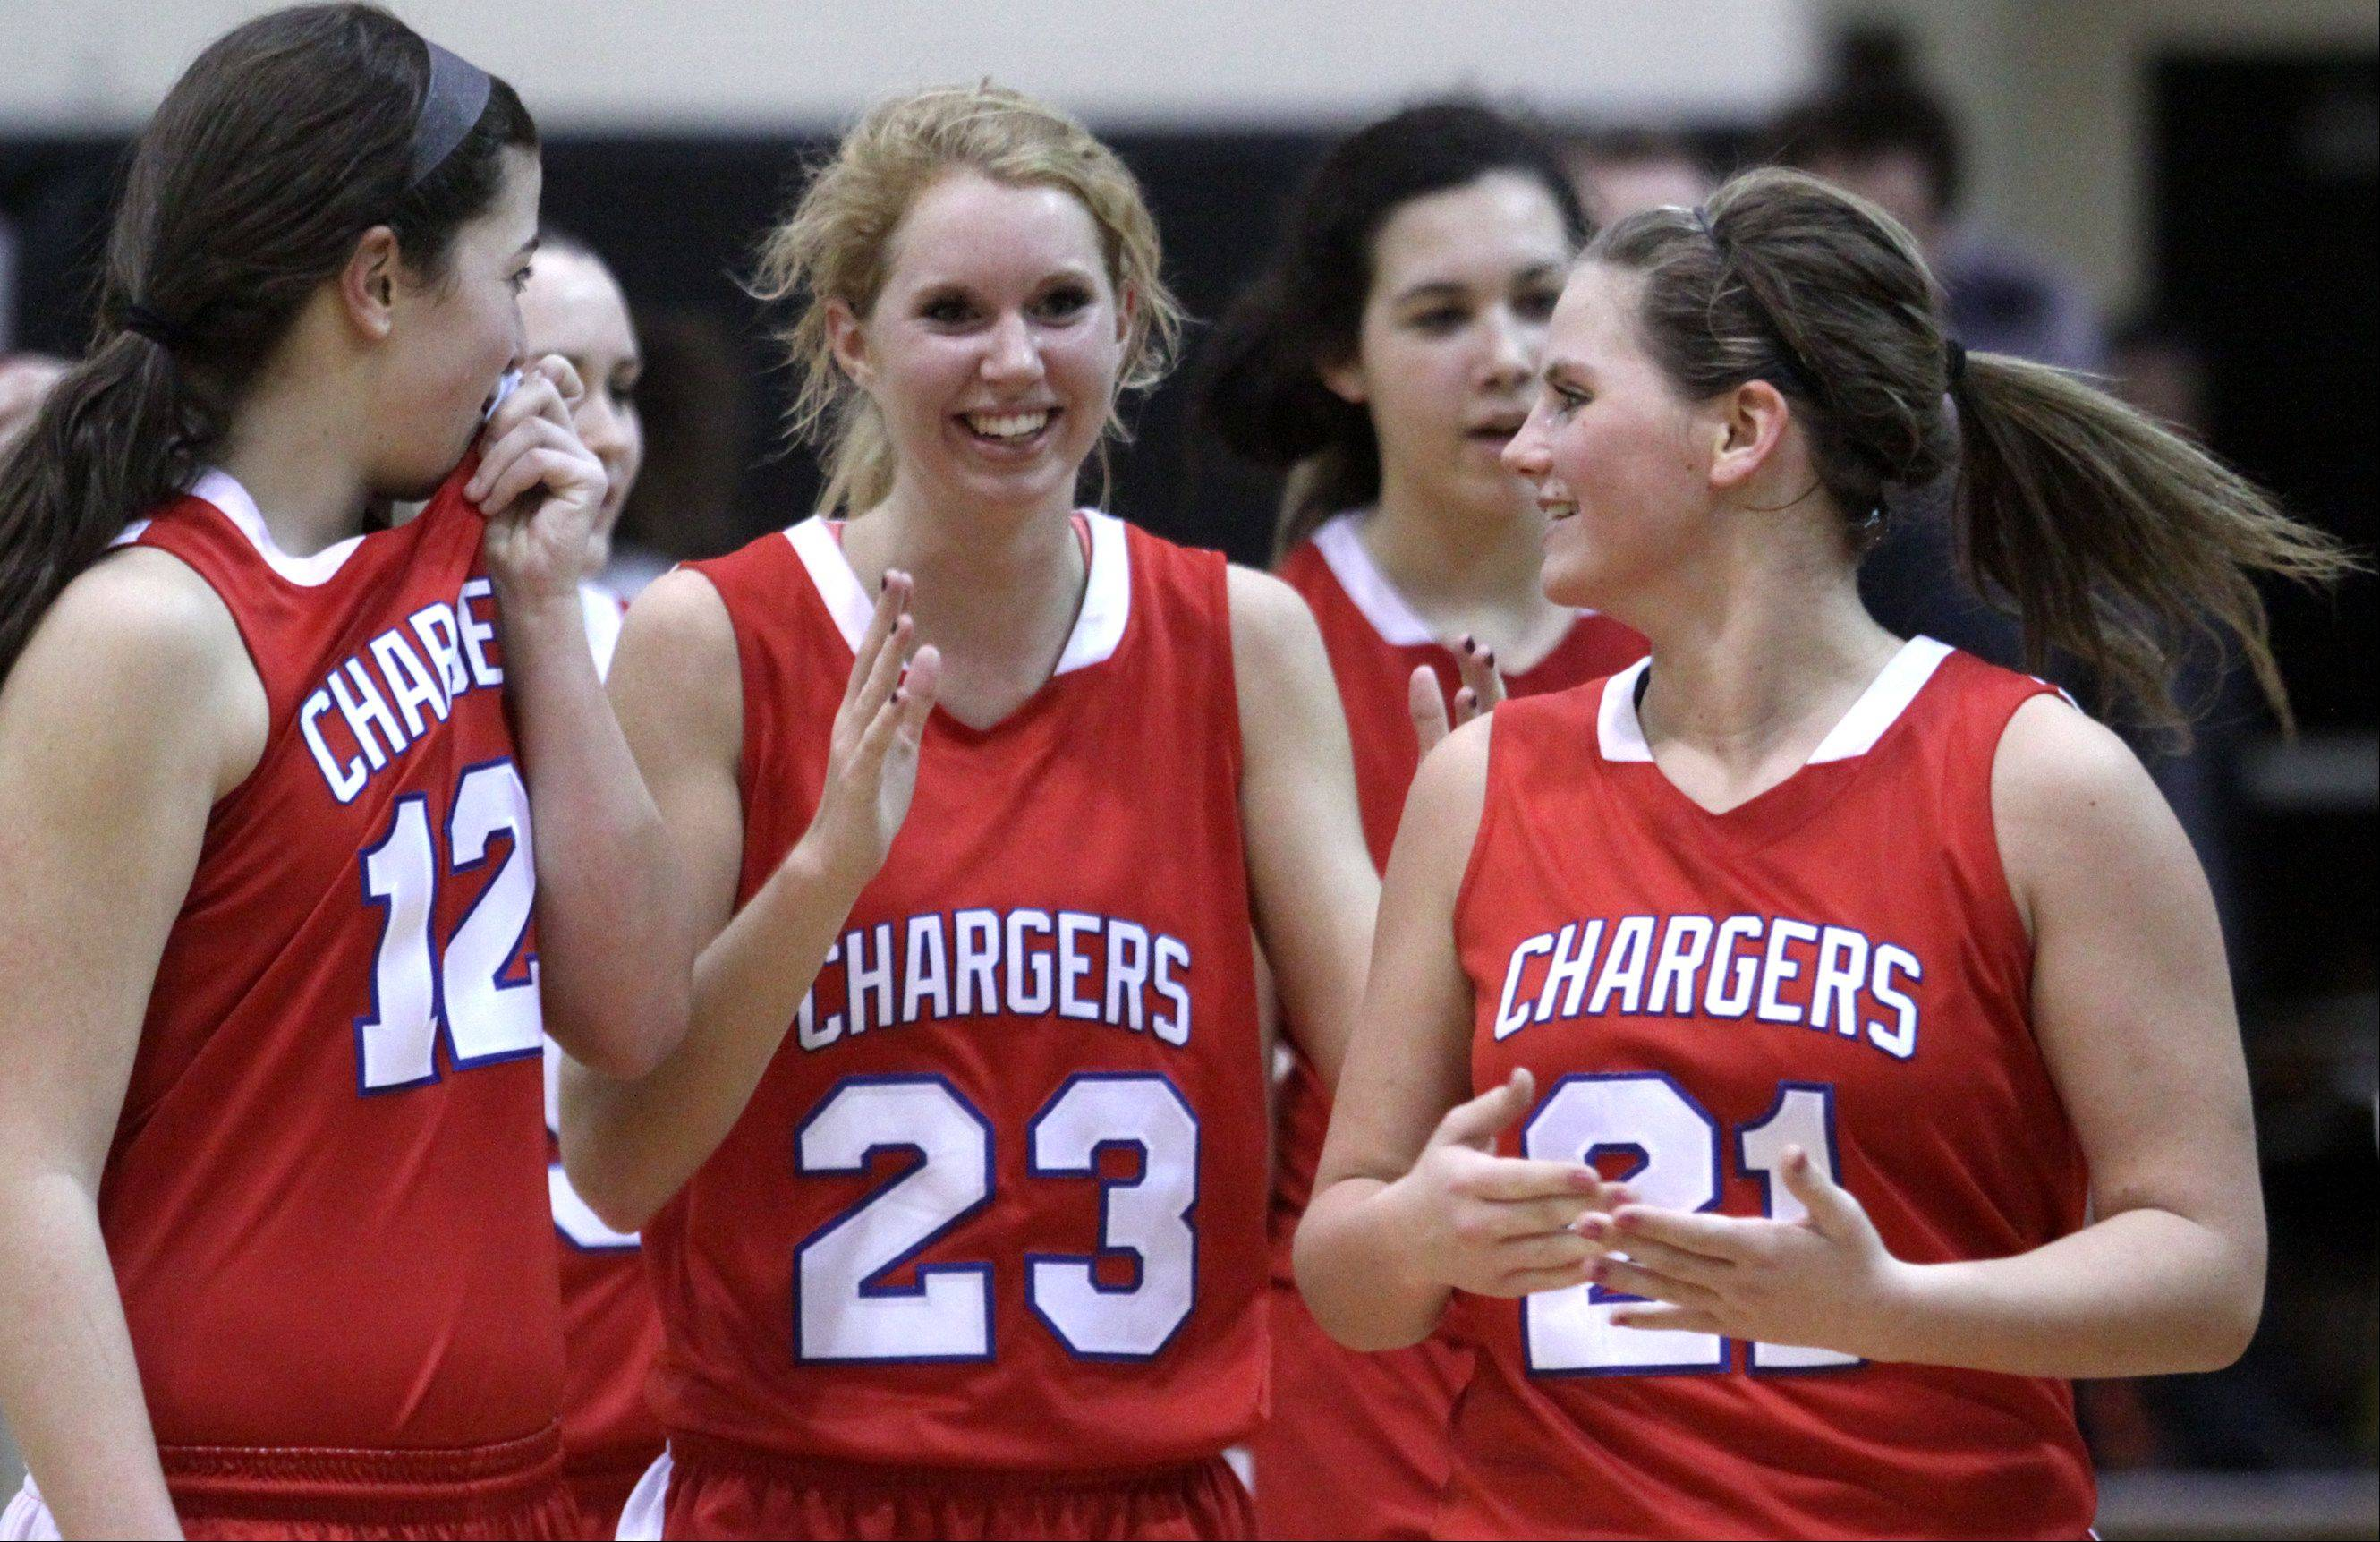 From left, Dundee-Crown's Lauren Lococo, Jillian Weichmann, and Stephanie Magsamen are all smiles after beating Jacobs in a regional game at Streamwood High School on Monday night. Dundee-Crown won 61-45.